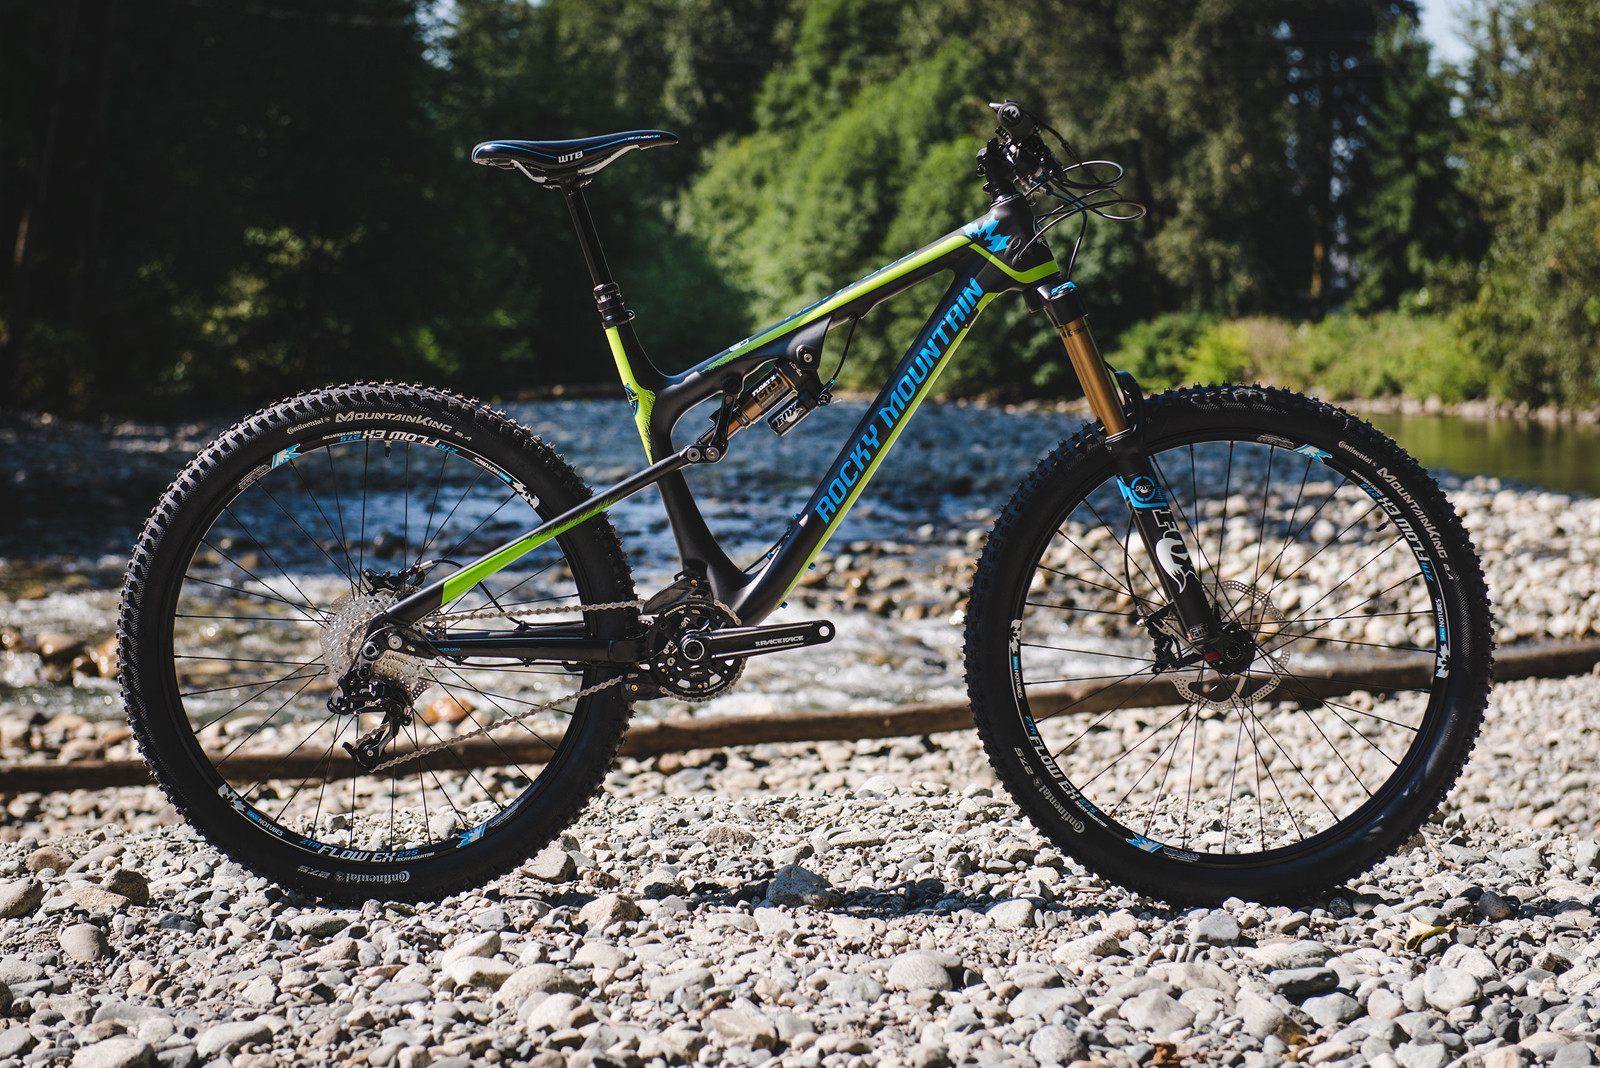 Altitude 770 MSL Rally Edition - First Look: 2014 Rocky Mountain Altitude Rally Edition - Get Rowdy! - Mountain Biking Pictures - Vital MTB